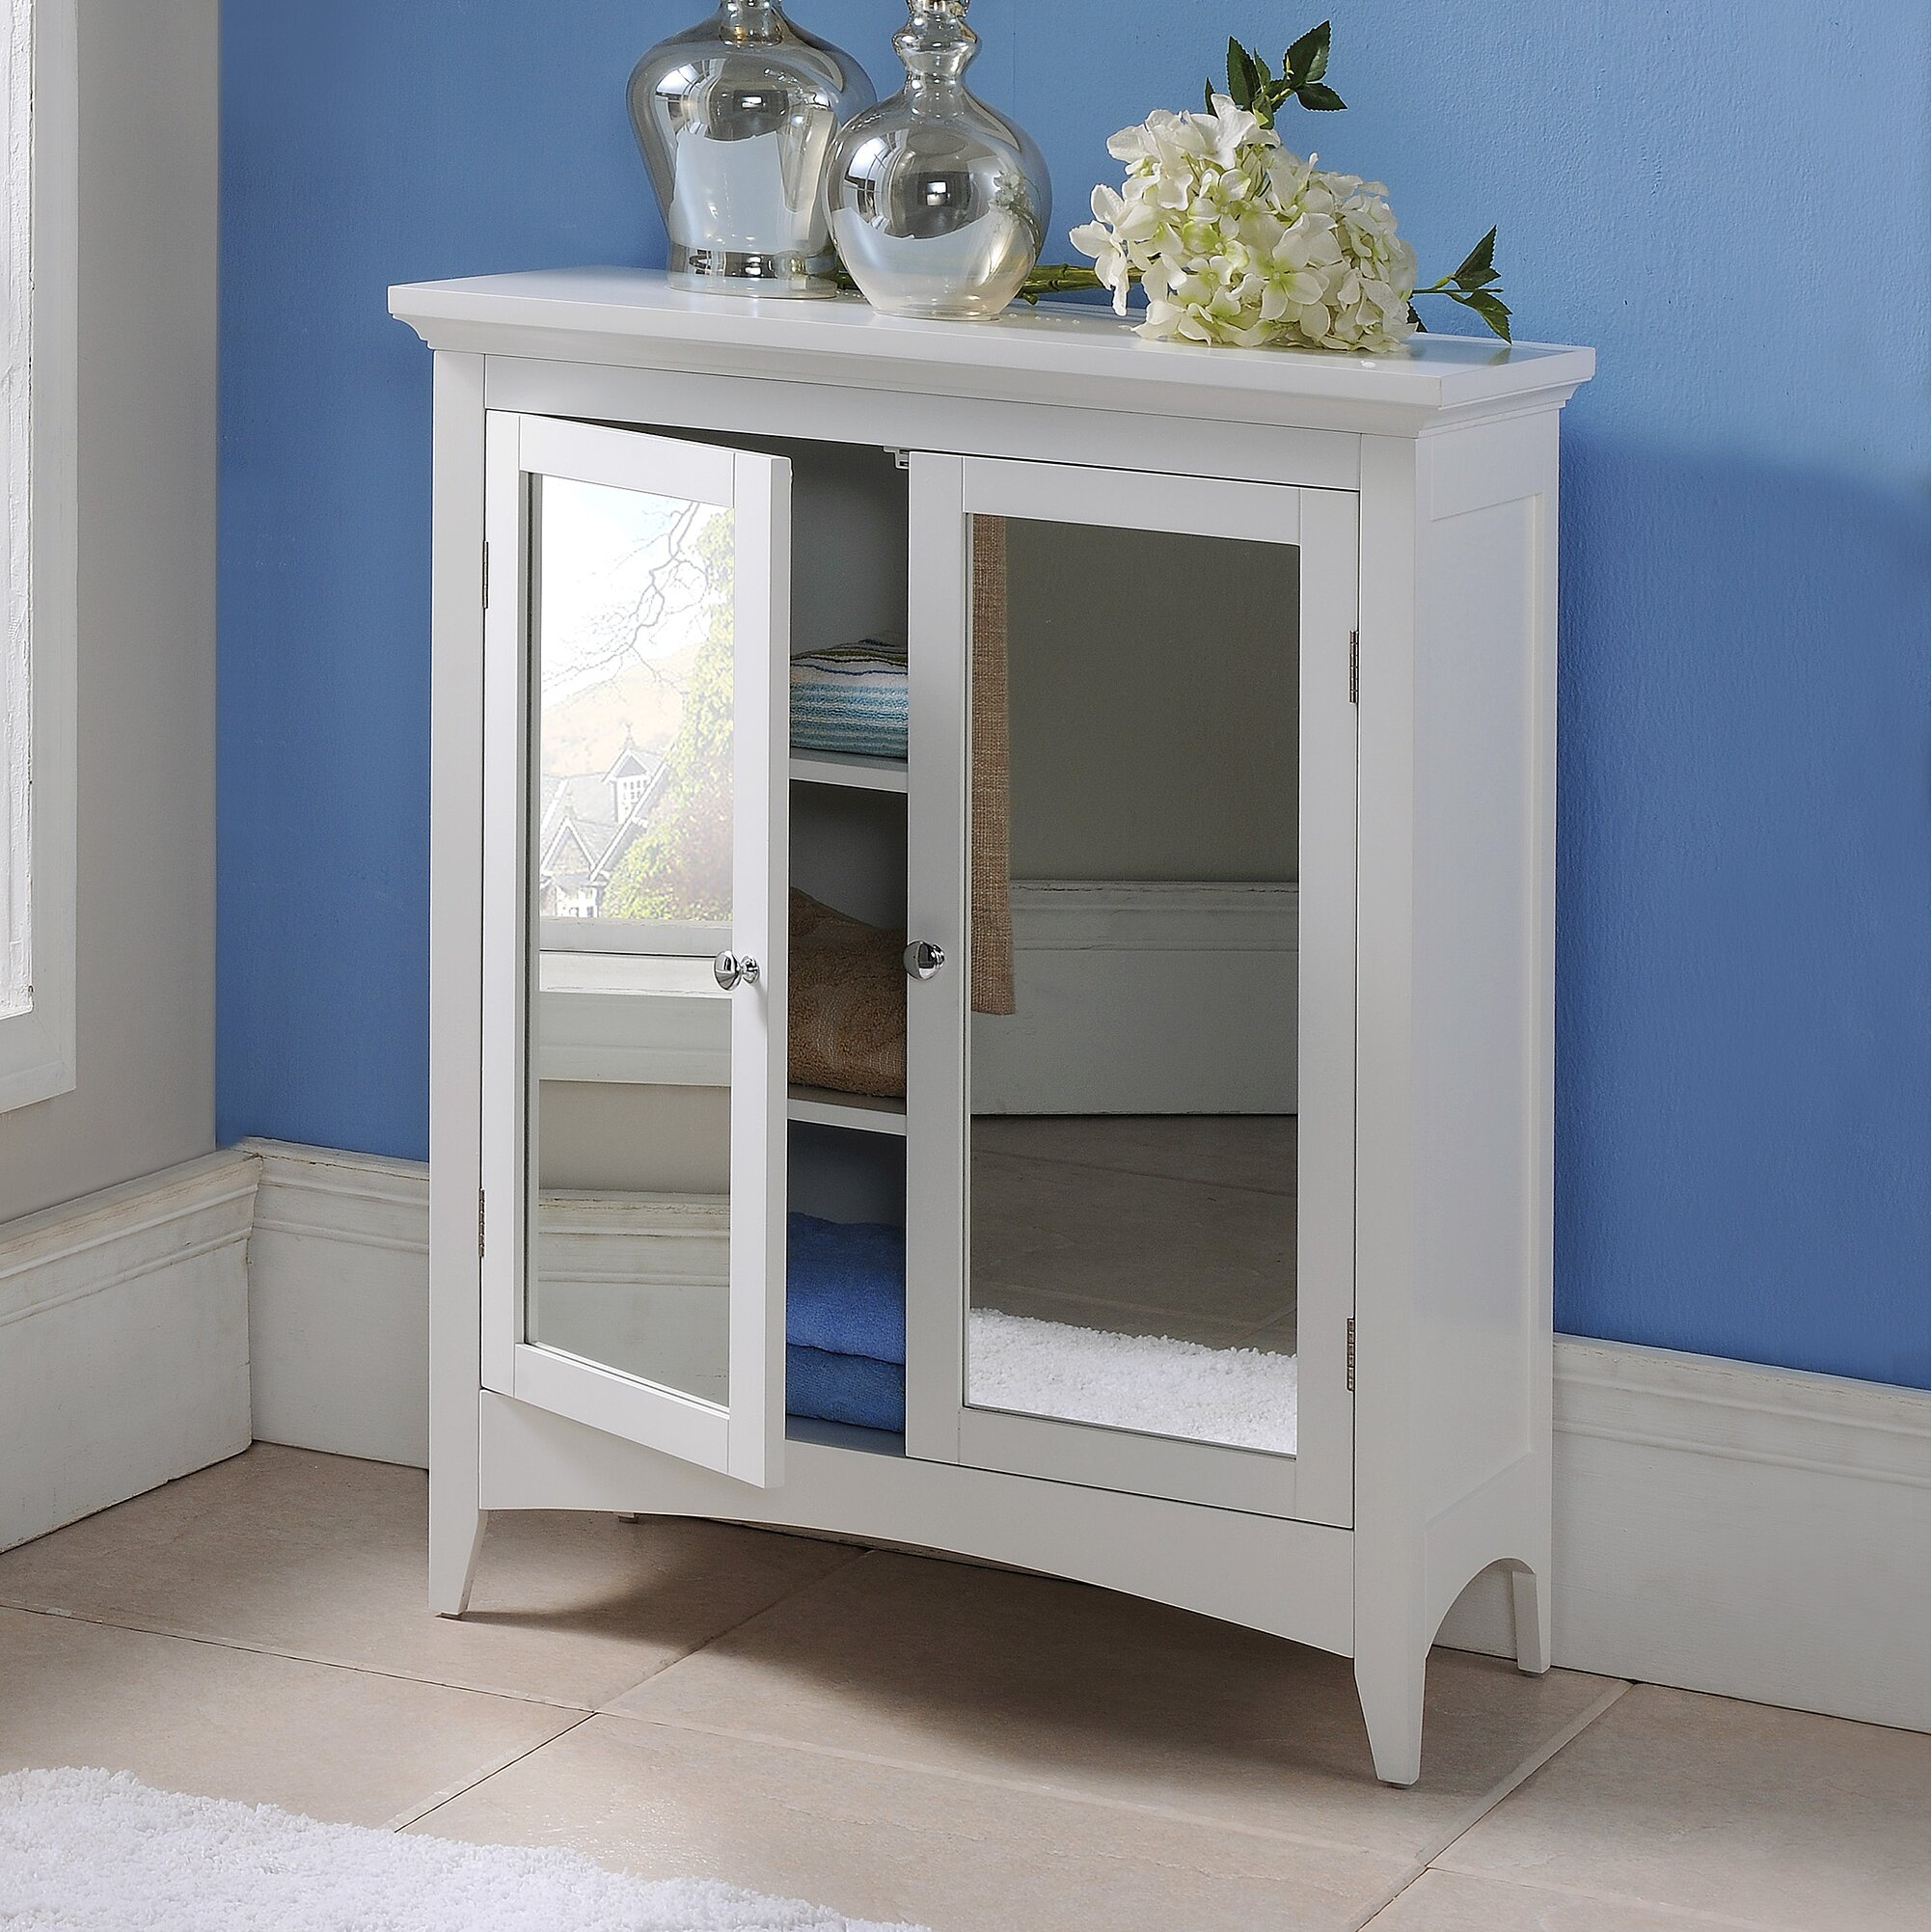 alcott hill langport 26 x 32 free standing cabinet. Black Bedroom Furniture Sets. Home Design Ideas